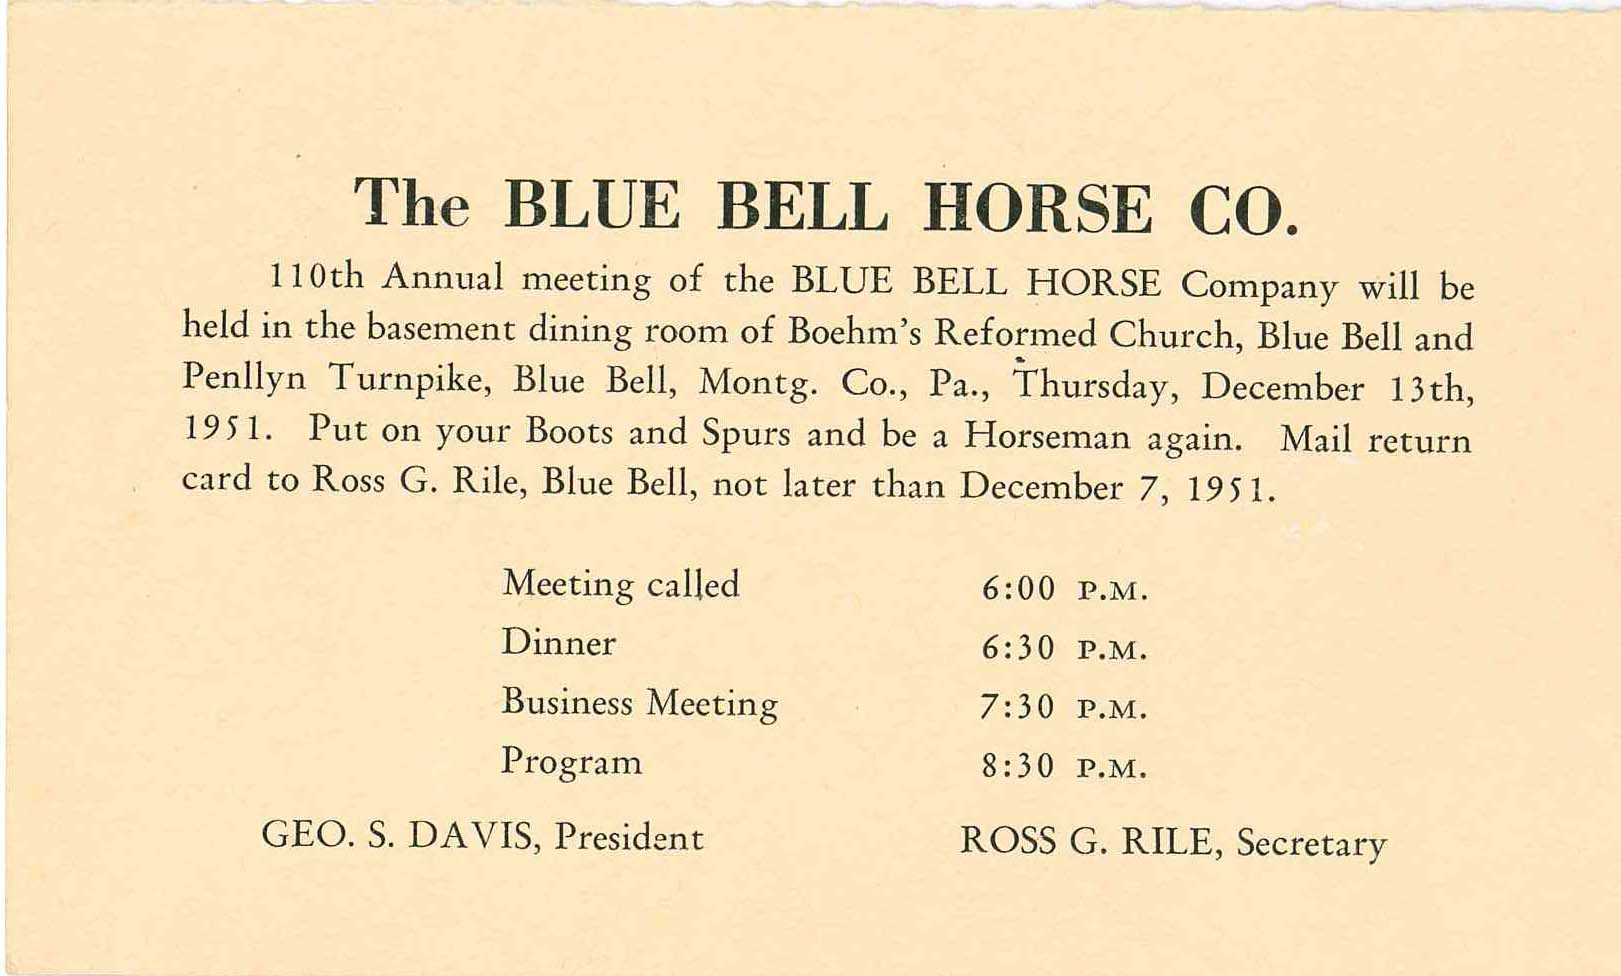 Blue bell horse company